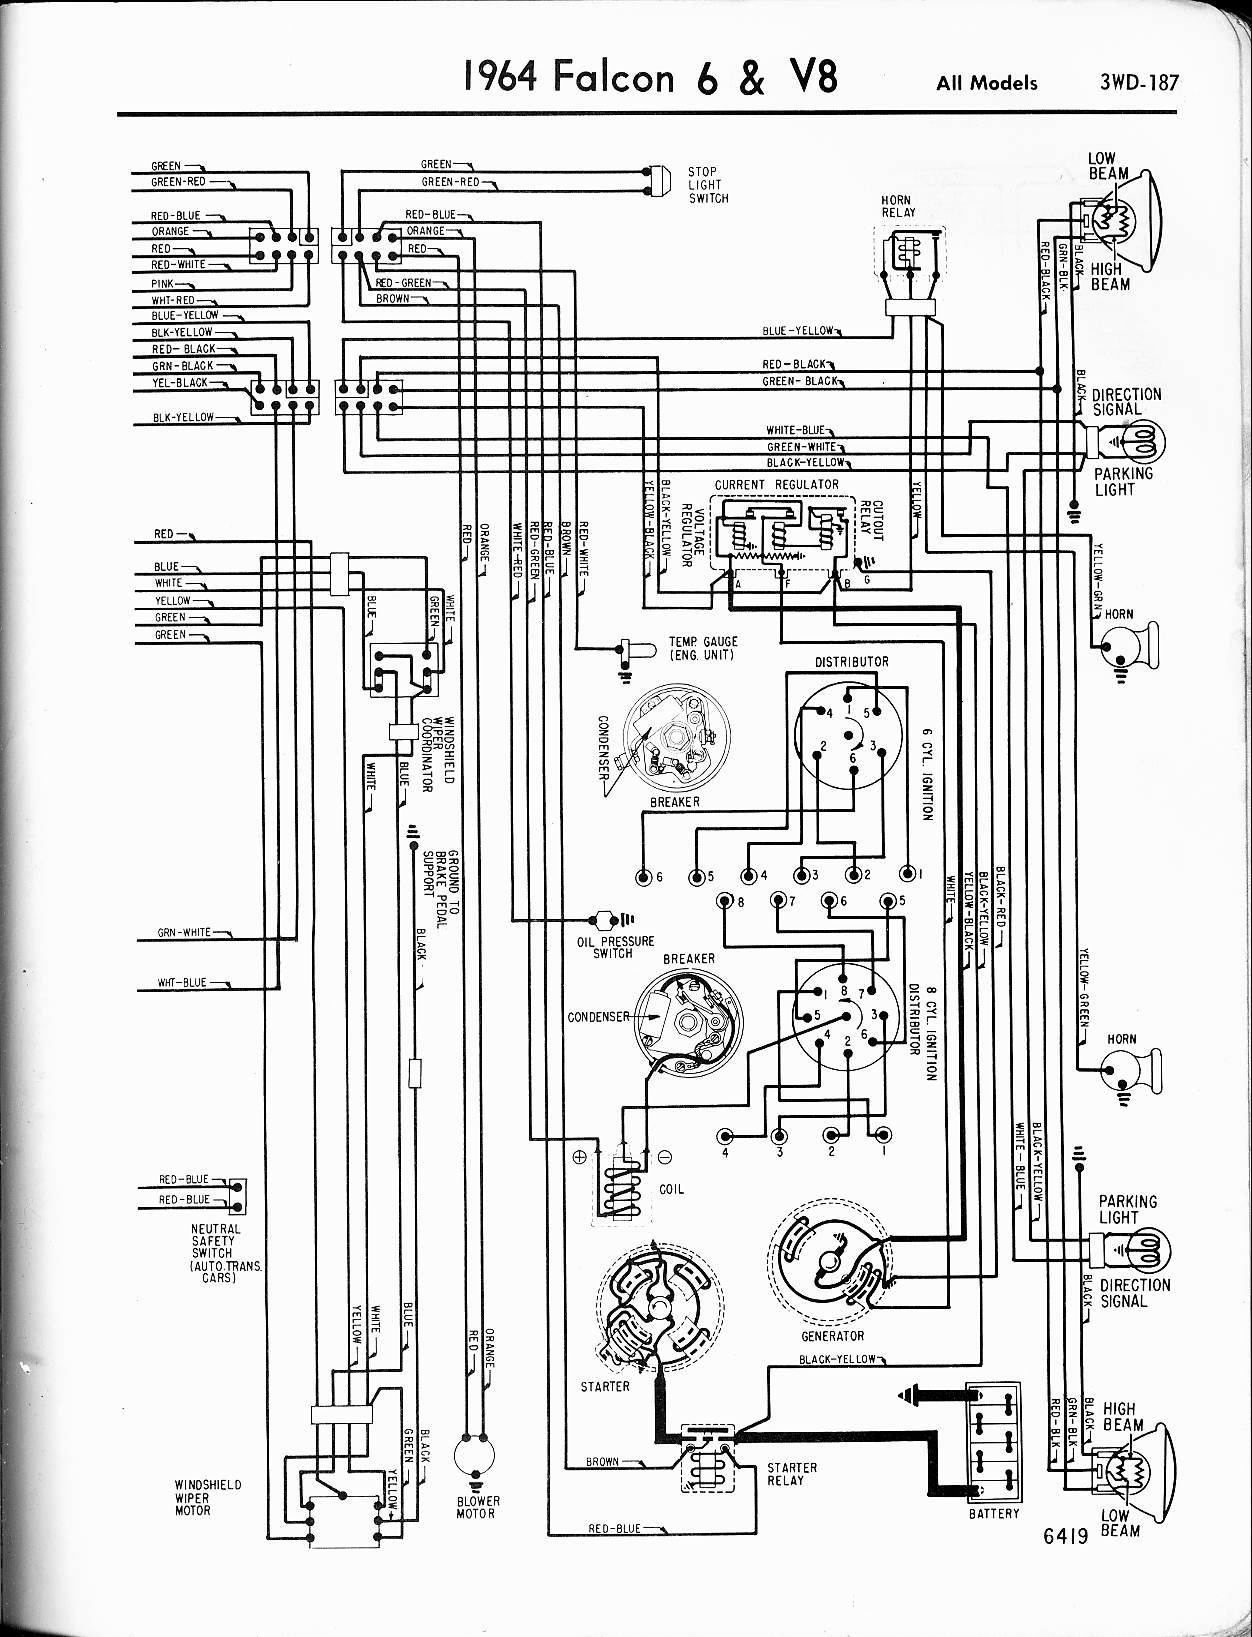 I Need An Electrical Schematic For A Ford Falcon